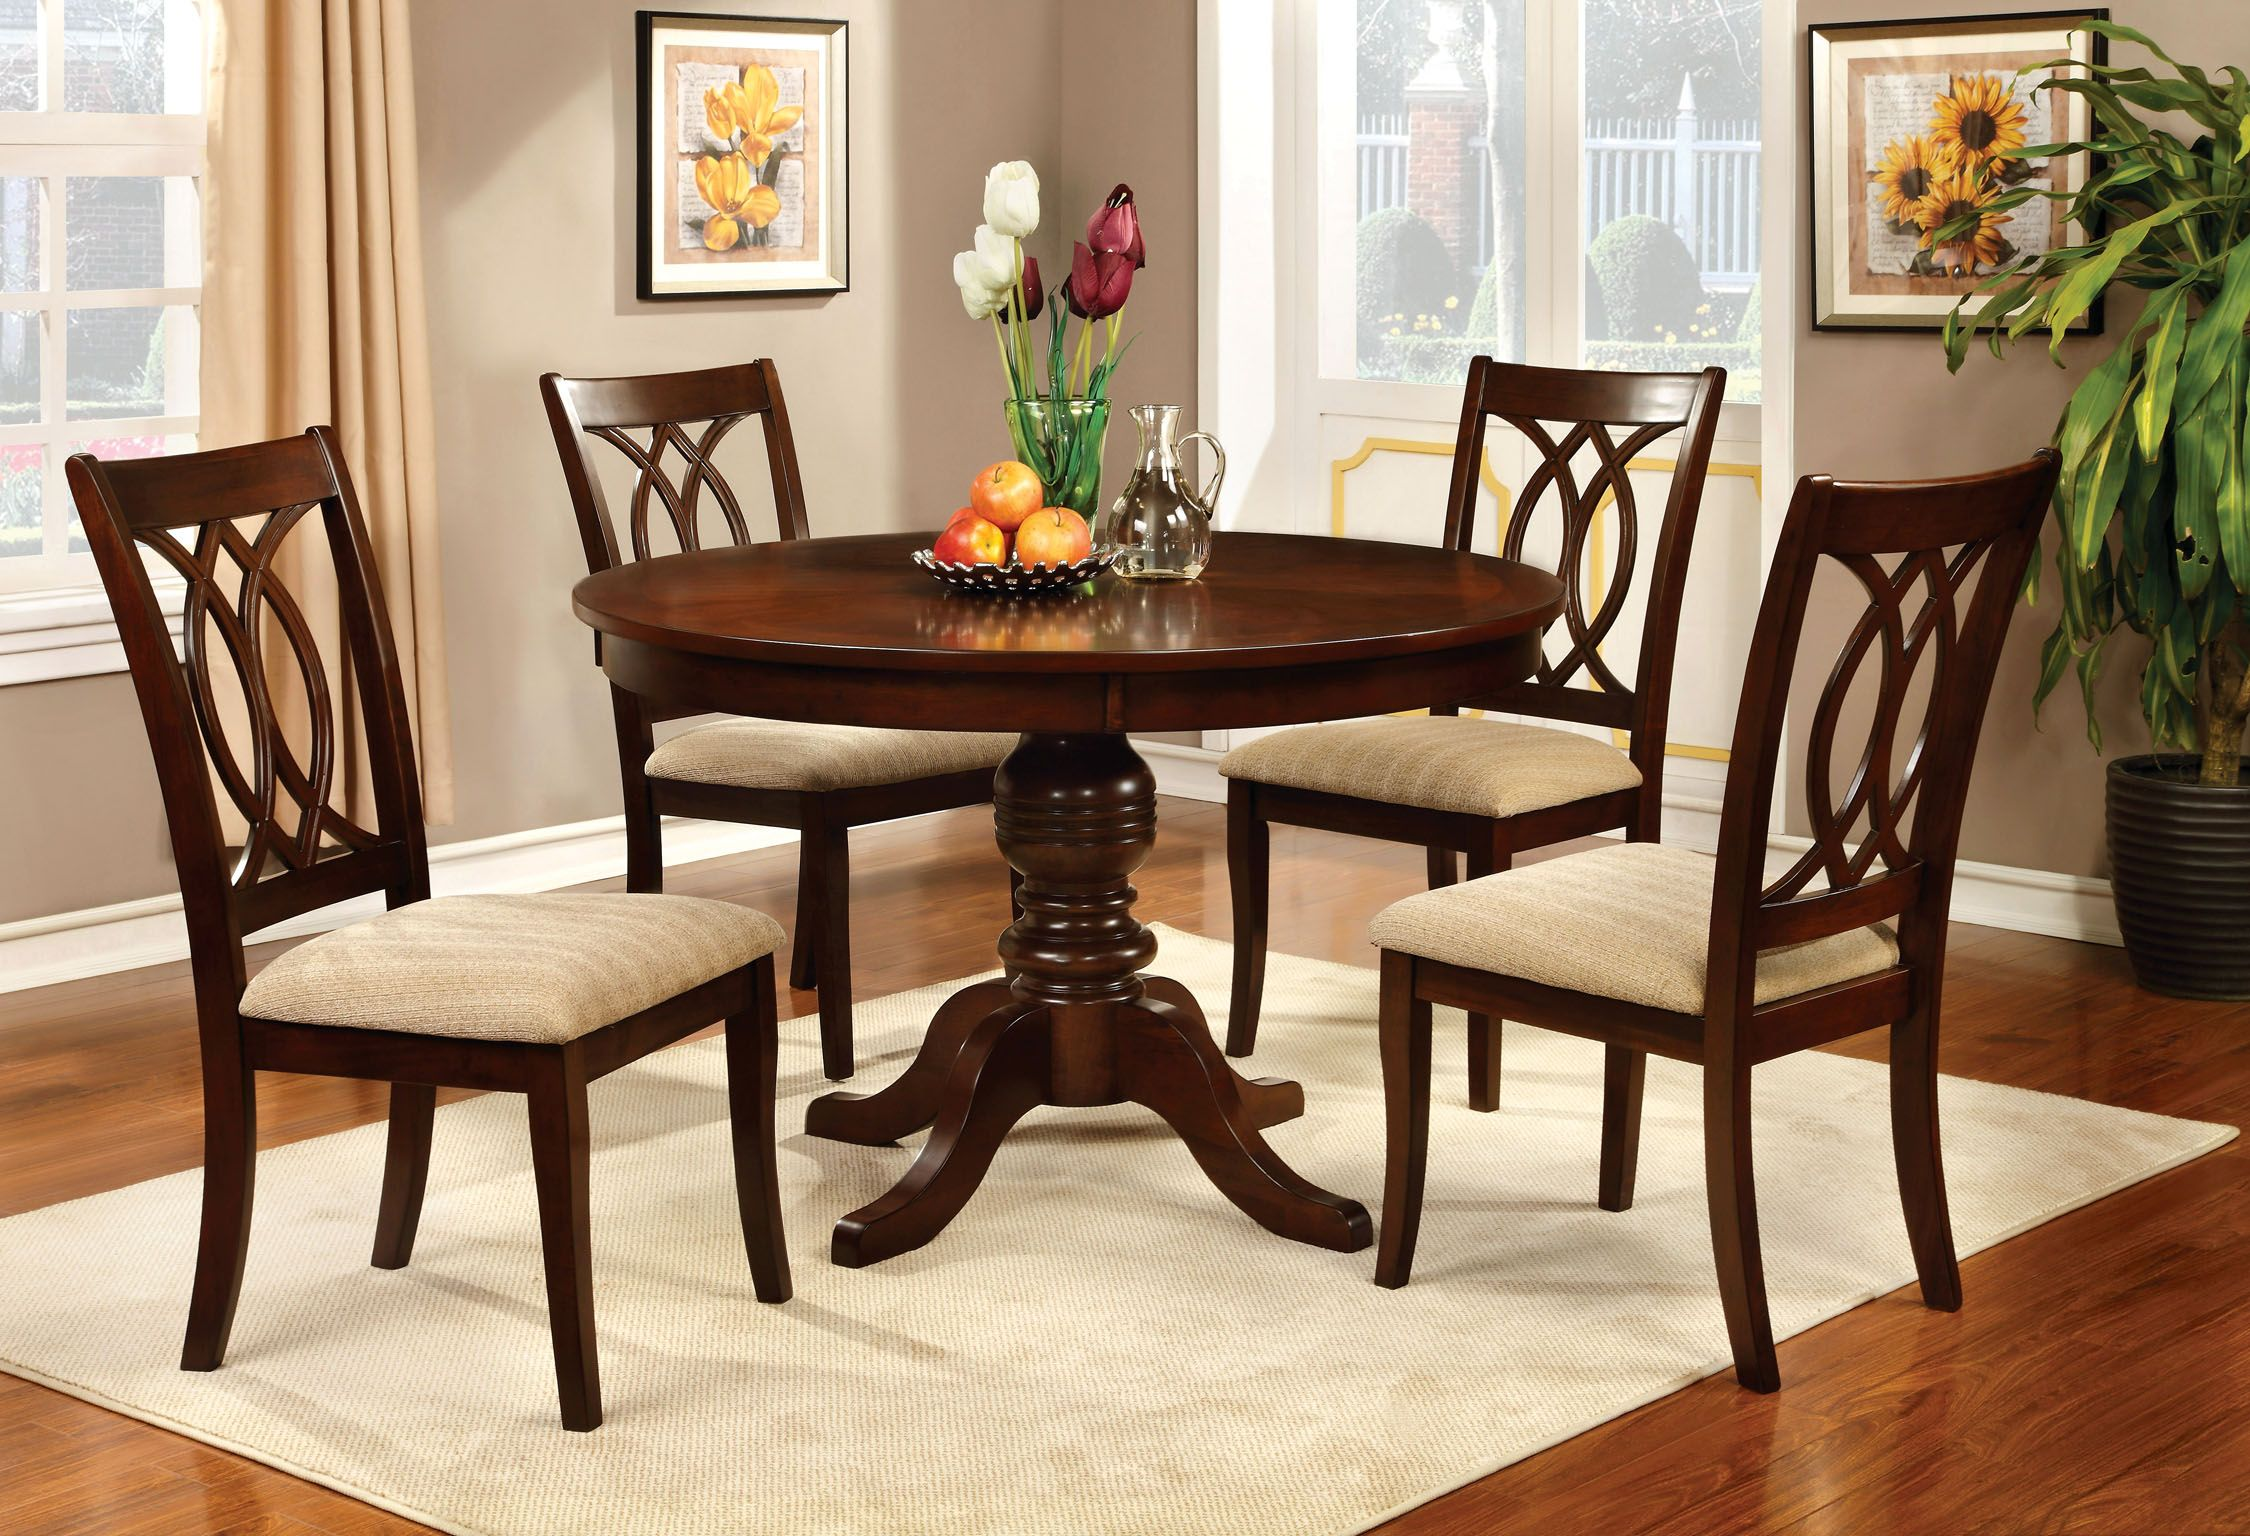 Furniture Of America Brennan 5Piece Round Brown Cherry Dining Set Custom Cherry Dining Room Chairs Sale Review